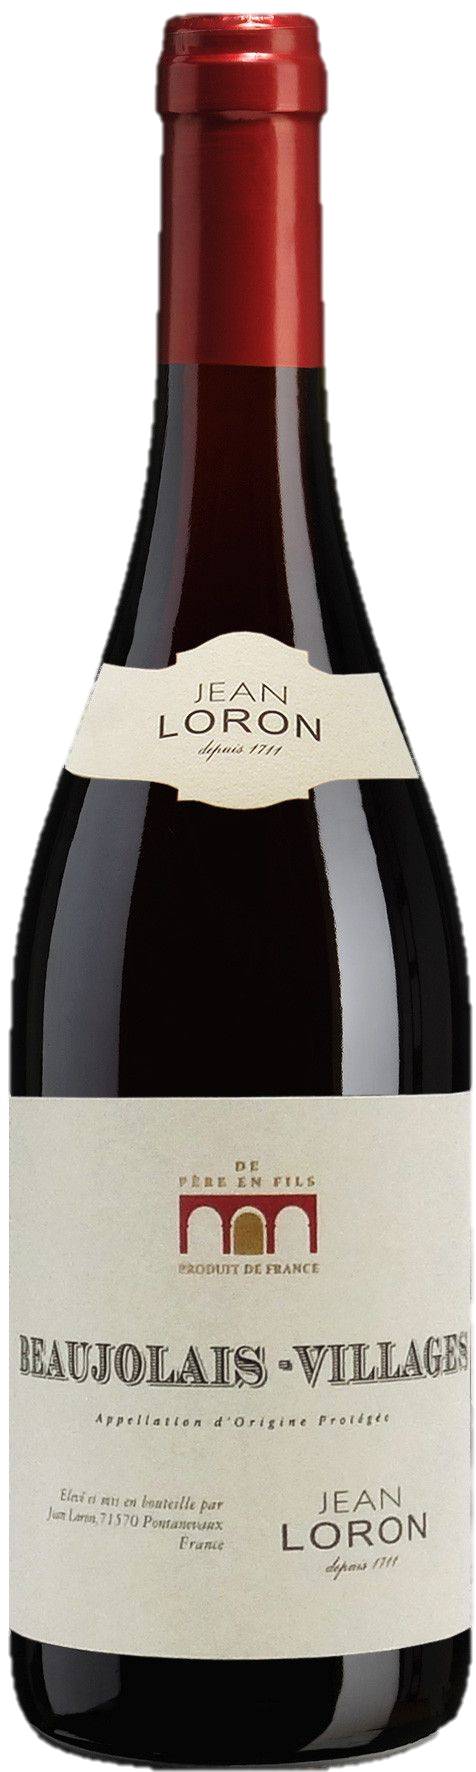 Jean Loron Beaujolais Villages